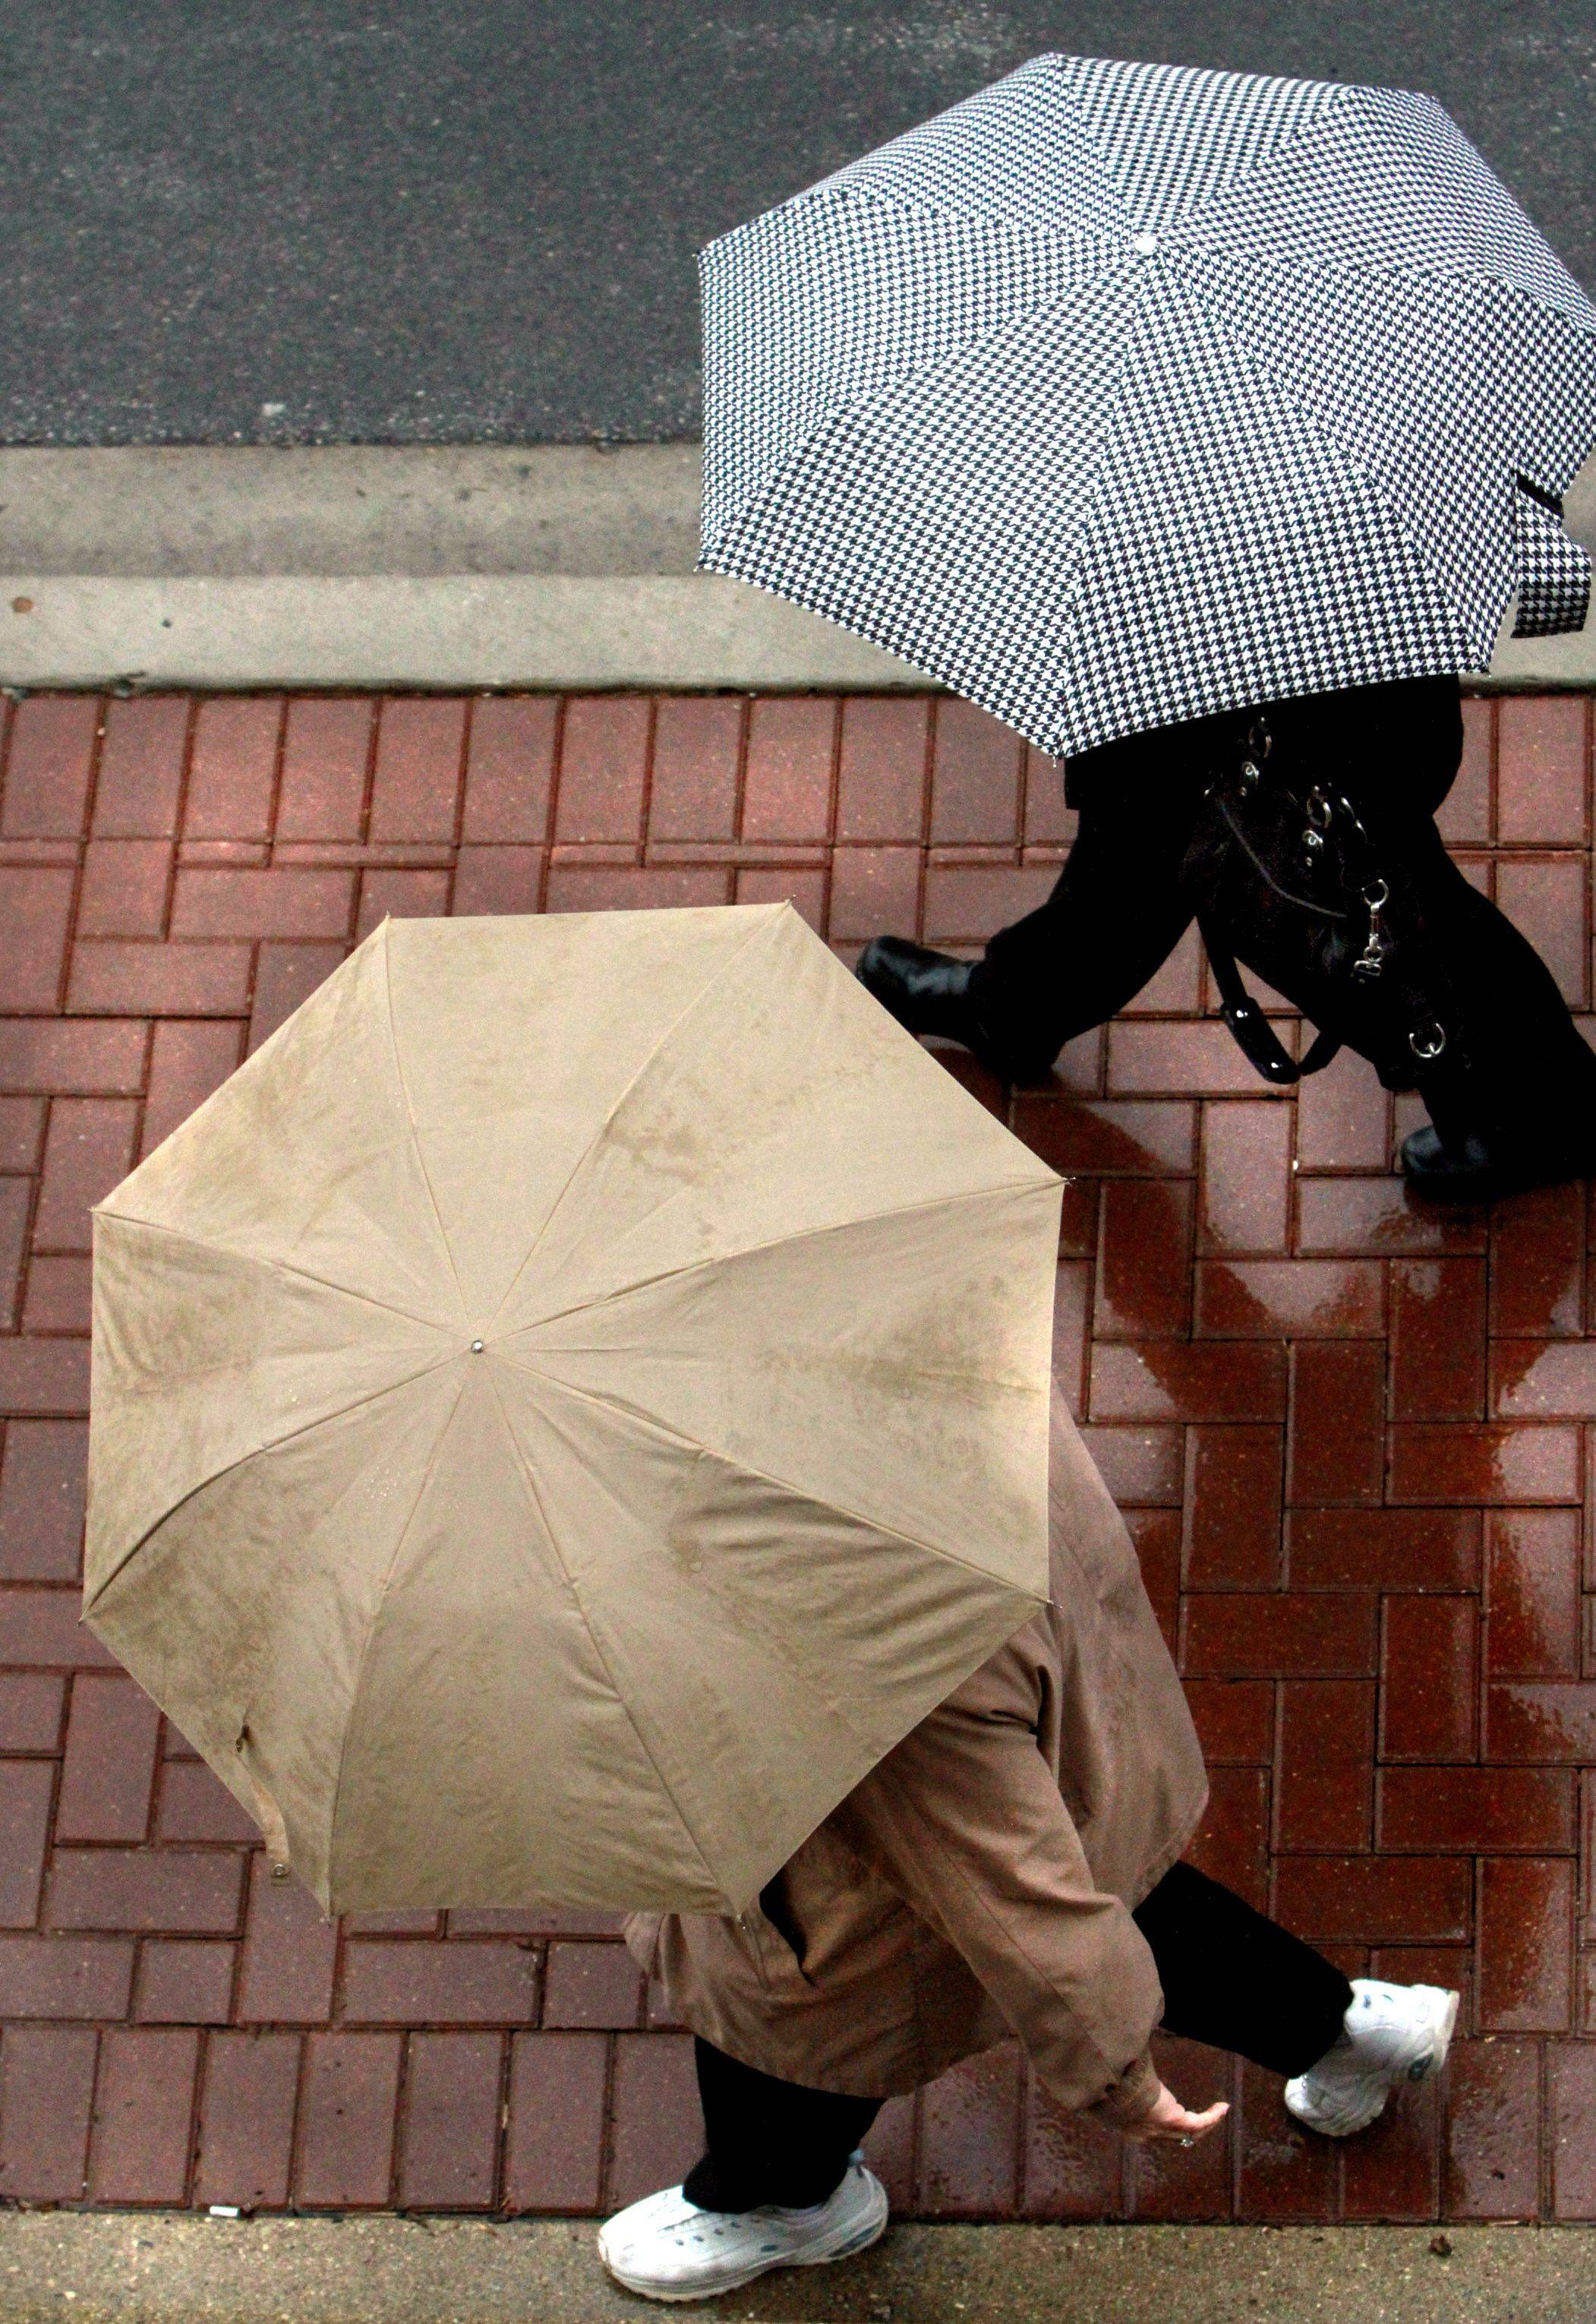 Cindy Schroeder of Arlington Heights, top, and Cindy Prince of Mt. Prospect needed their umbrellas on Wednesday as they headed back to work in Arlington Heights after having lunch near their office downtown.